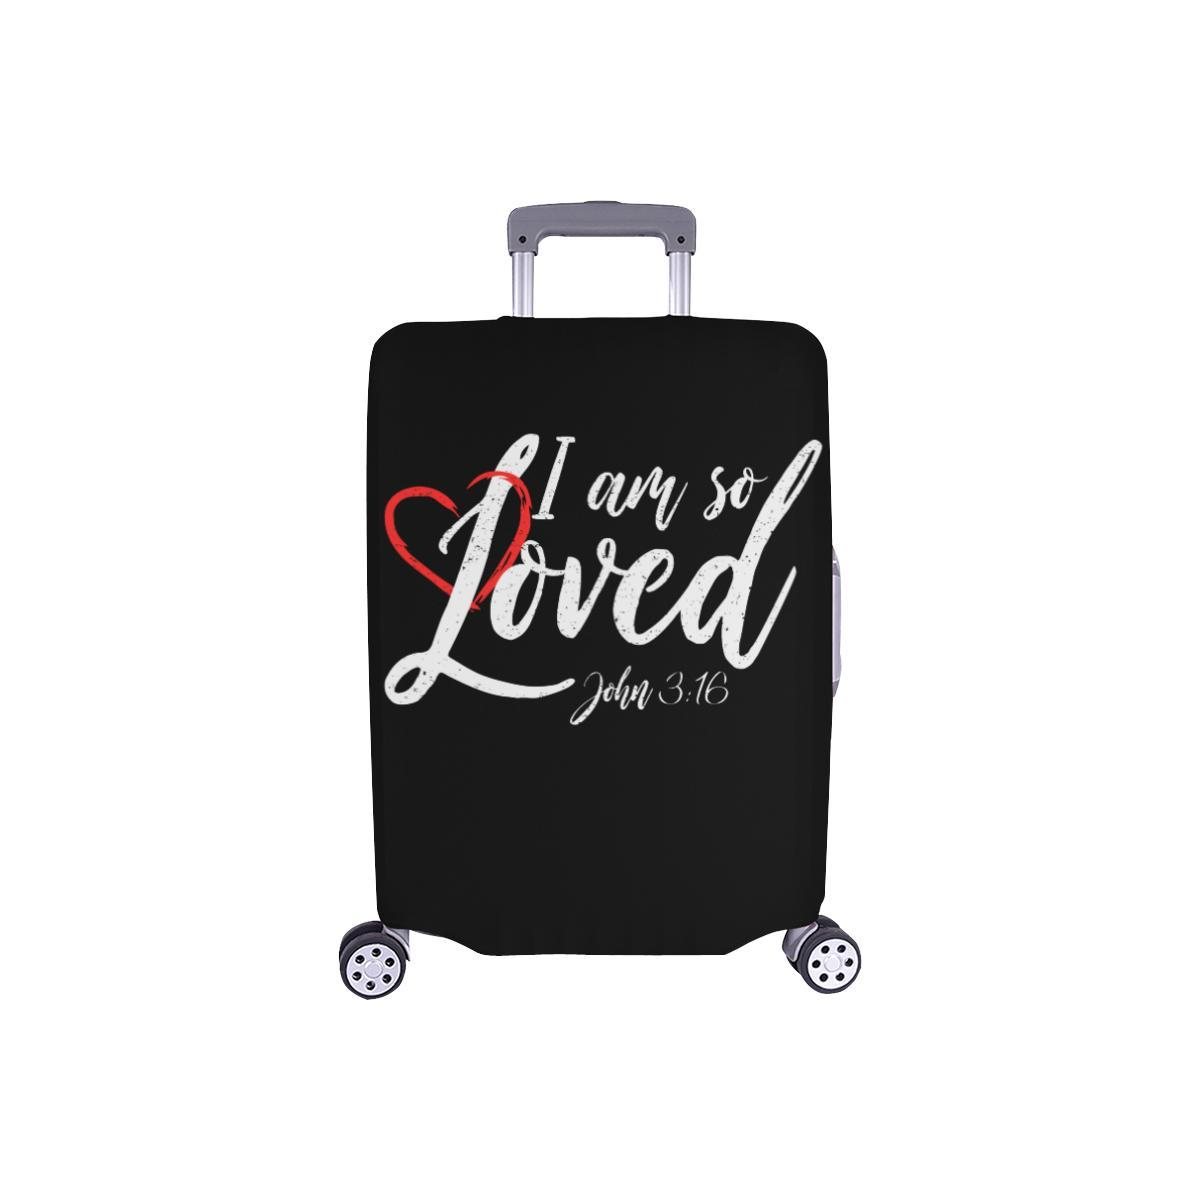 I Am So Loved John3:16 Christian Travel Luggage Cover Suitcase Protector-S-Black-JoyHip.Com